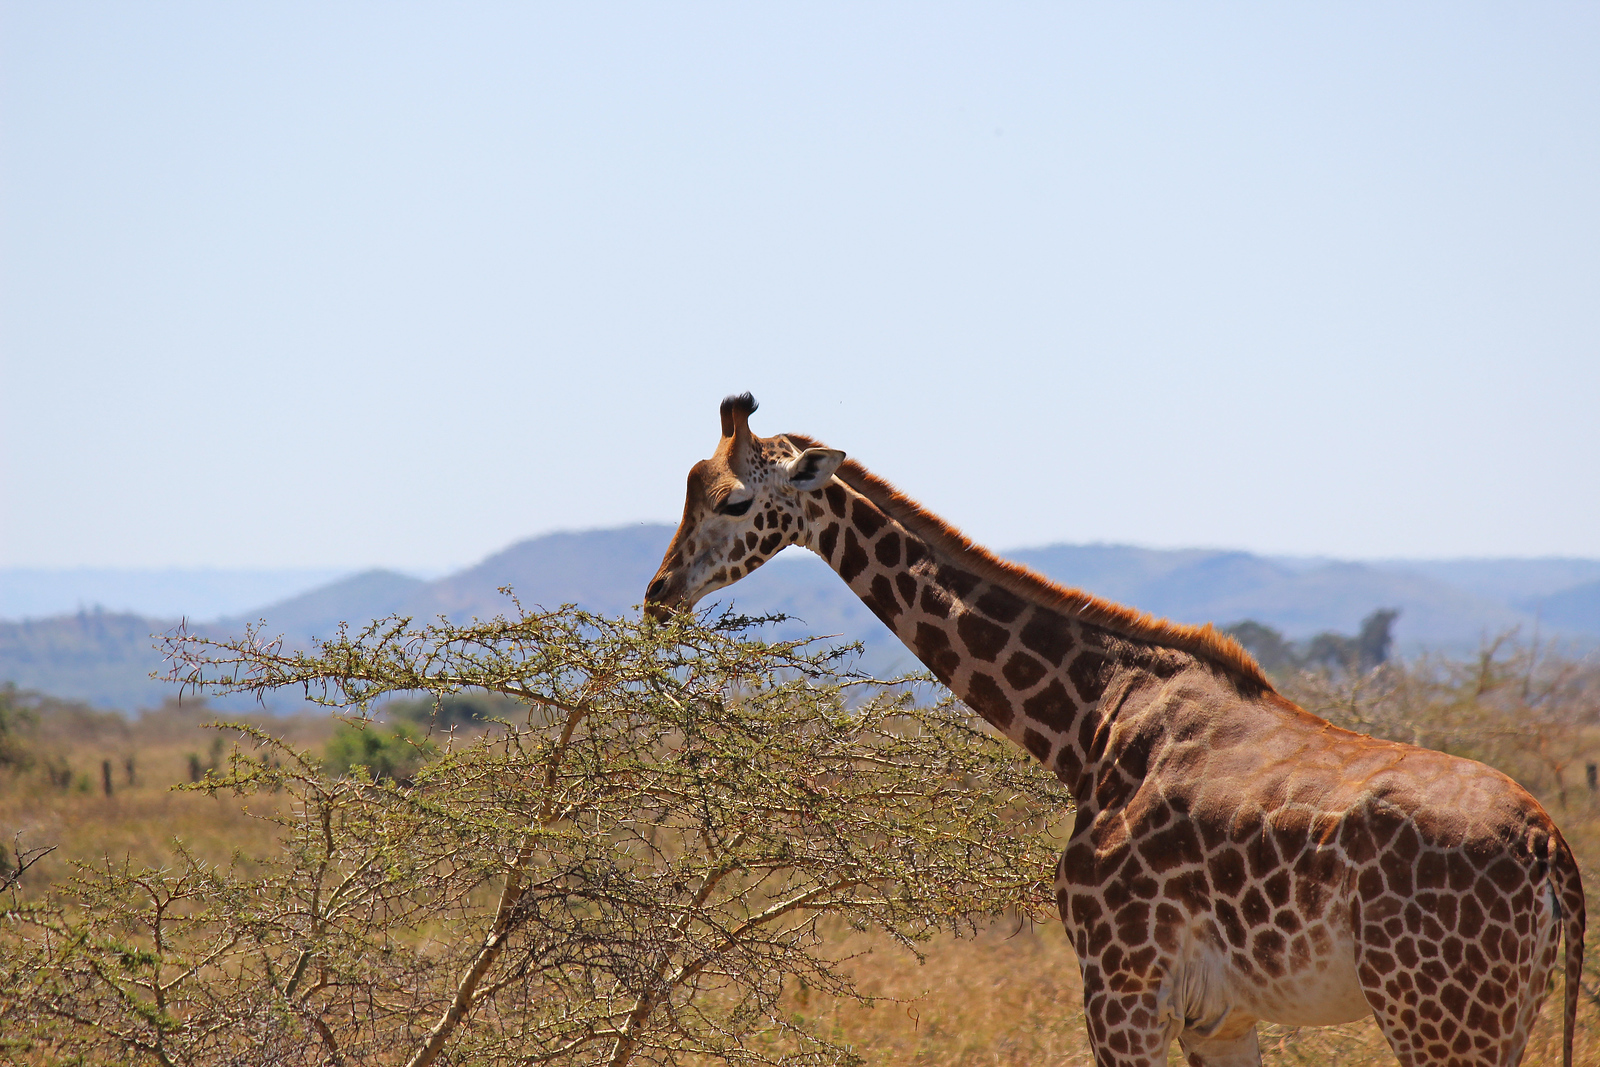 Animals of Kenya: My Encounters at Soysambu Conservancy